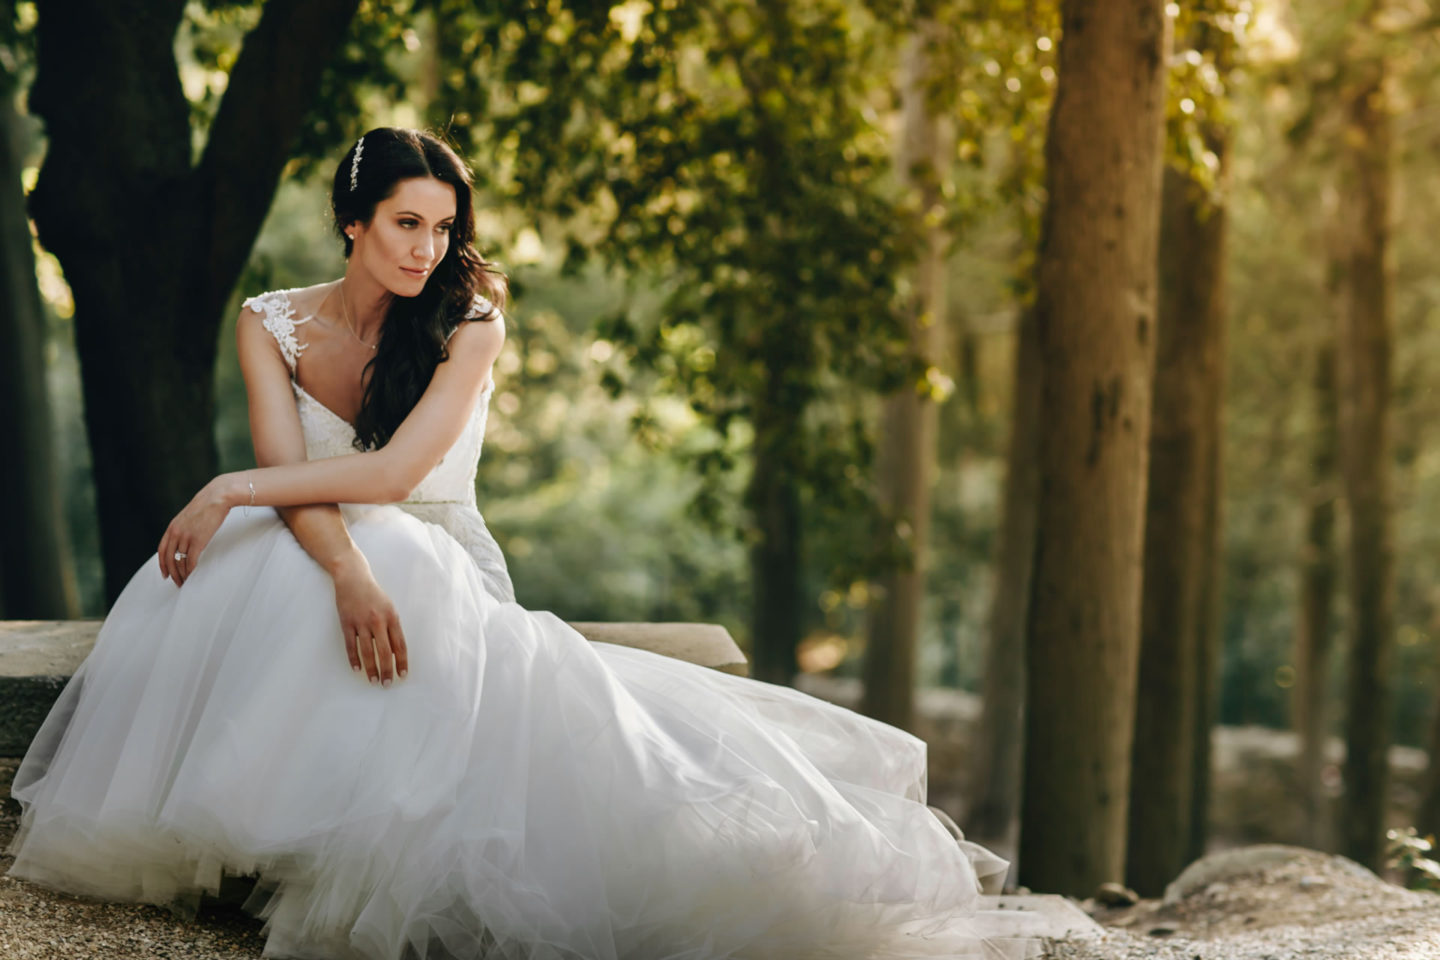 Bucolic :: Crazy wedding at Vincigliata Castle and Villa San Michele :: Luxury wedding photography - 25 :: Bucolic